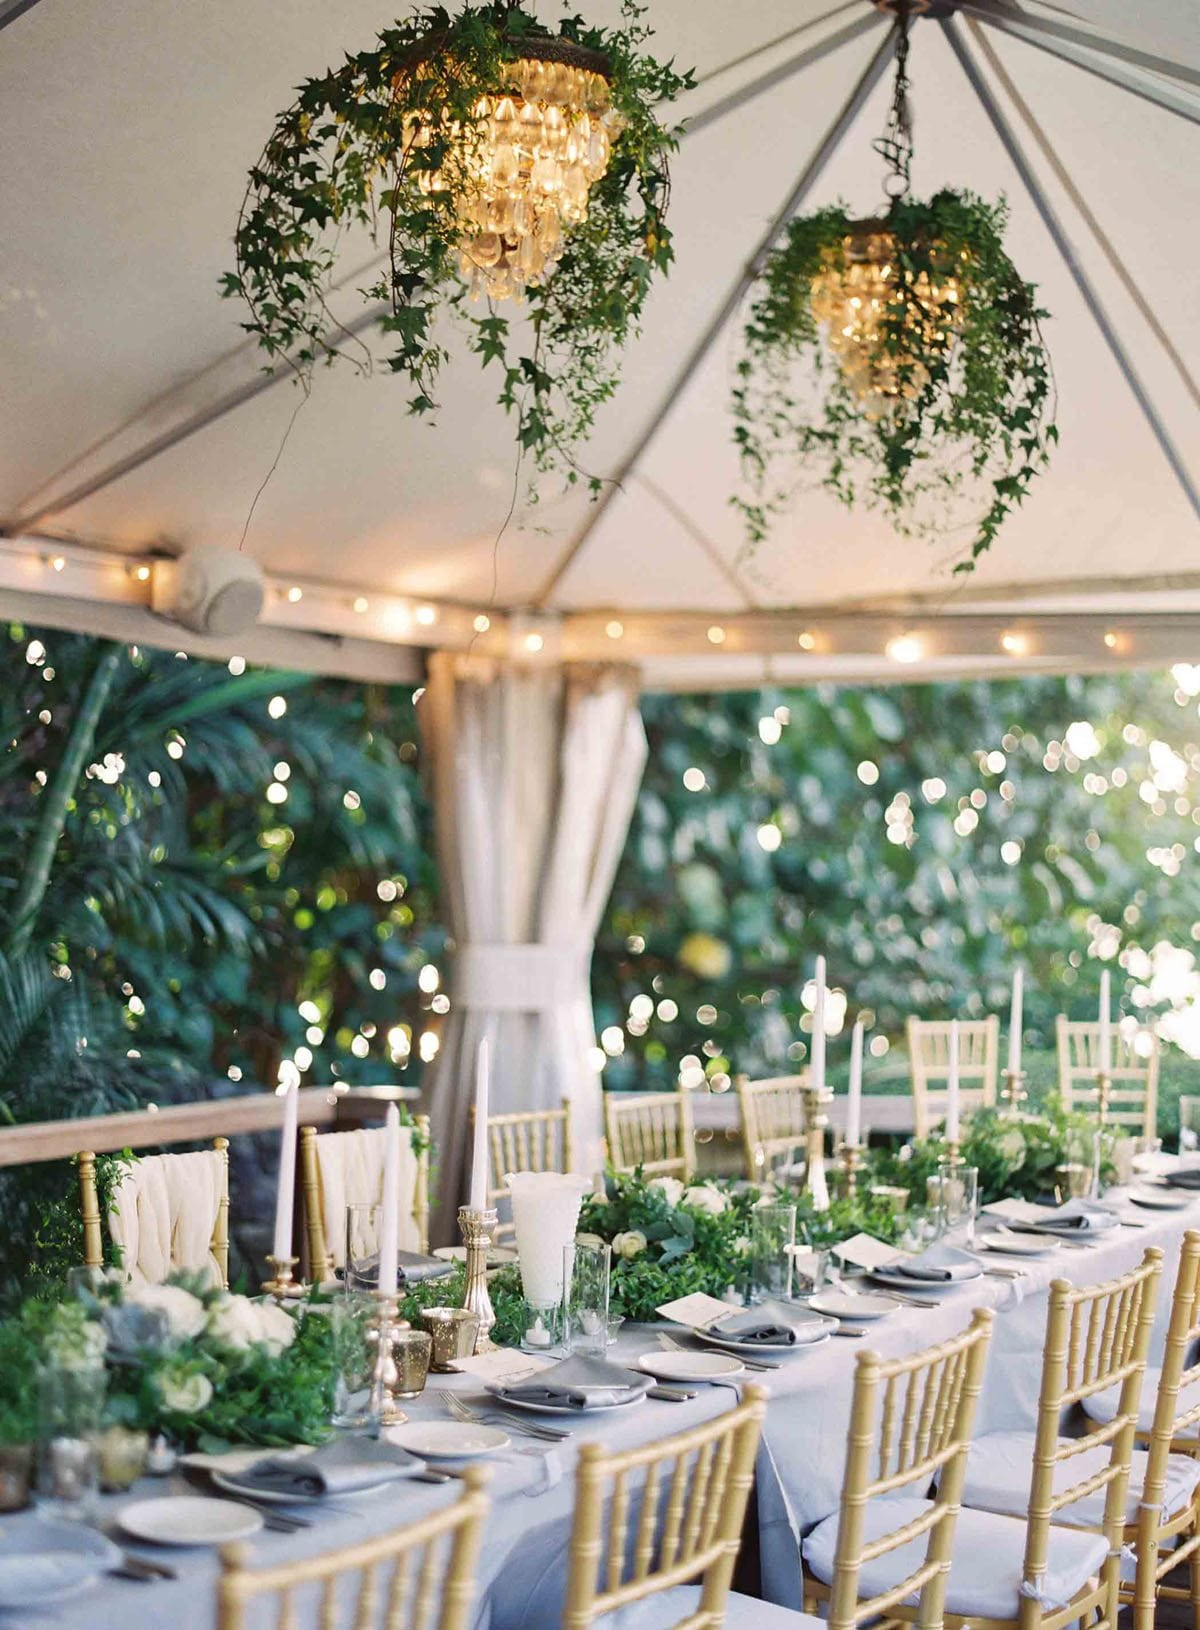 Reception tent with chandeliers | Destination Weddings in Maui | Maui's Angels